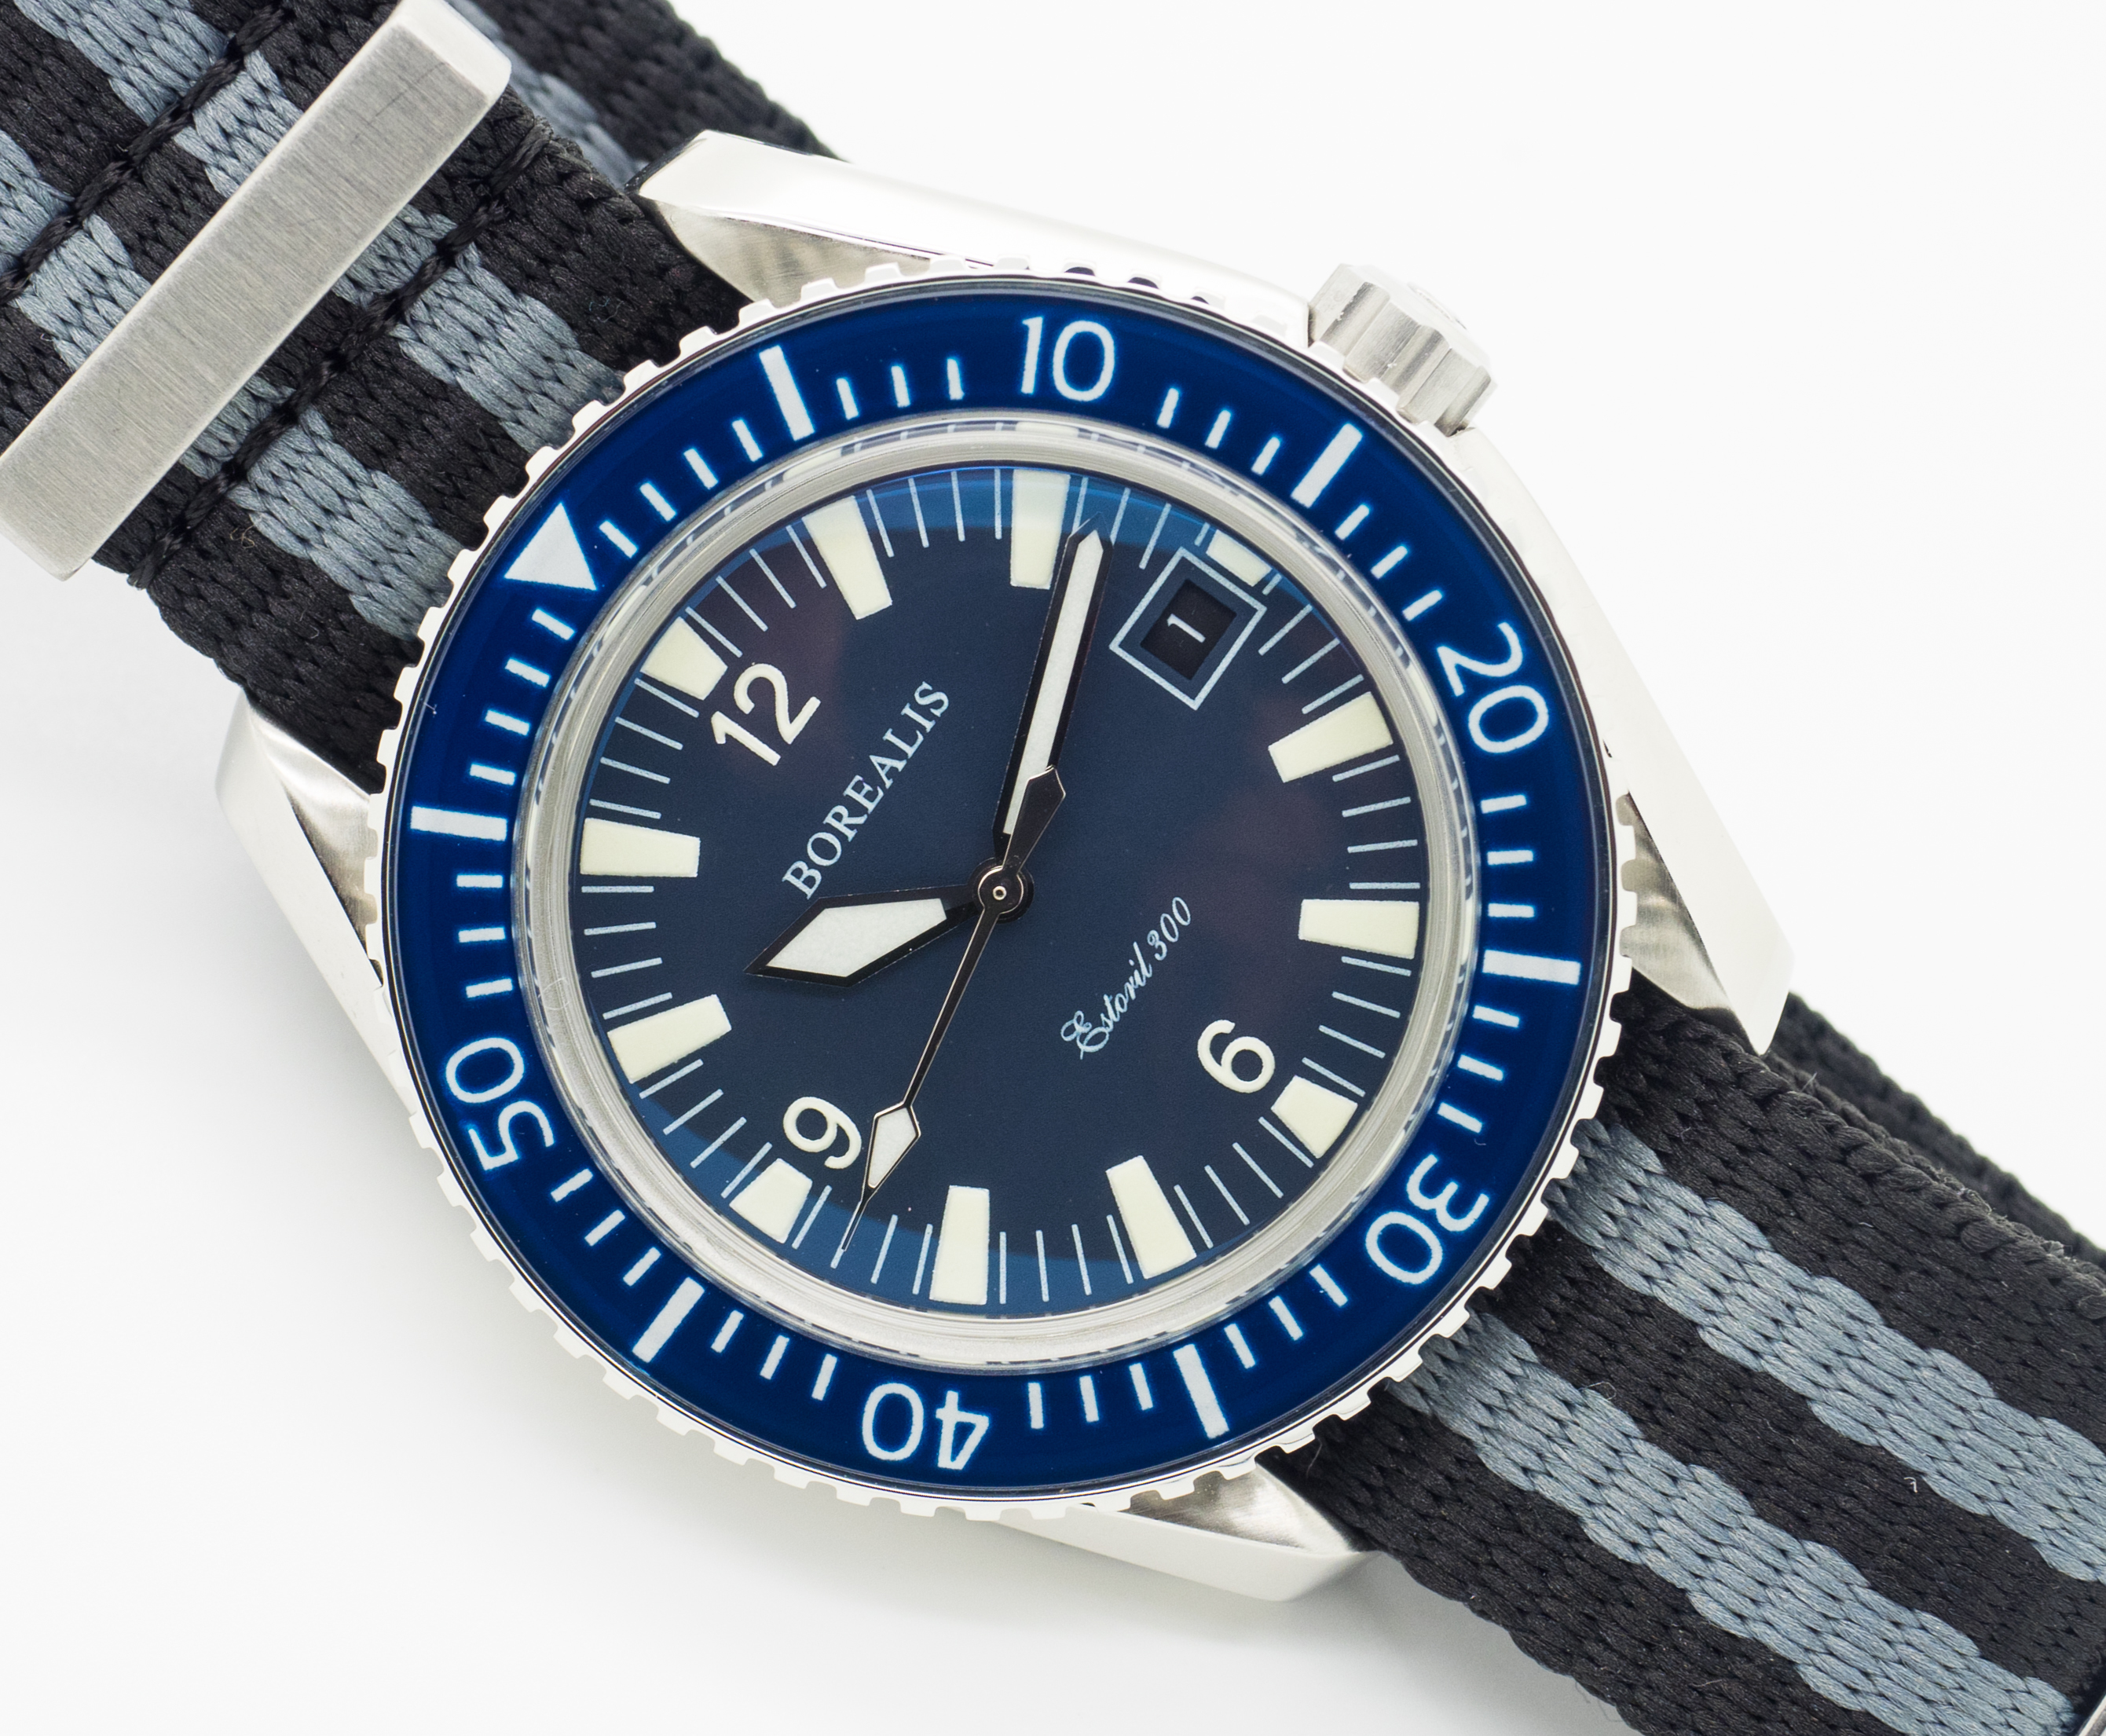 Borealis Estoril 300 Blue Dial Arabic Numbers Date Sapphire Bezel Miyota 9015 Automatic Diver Watch 300m